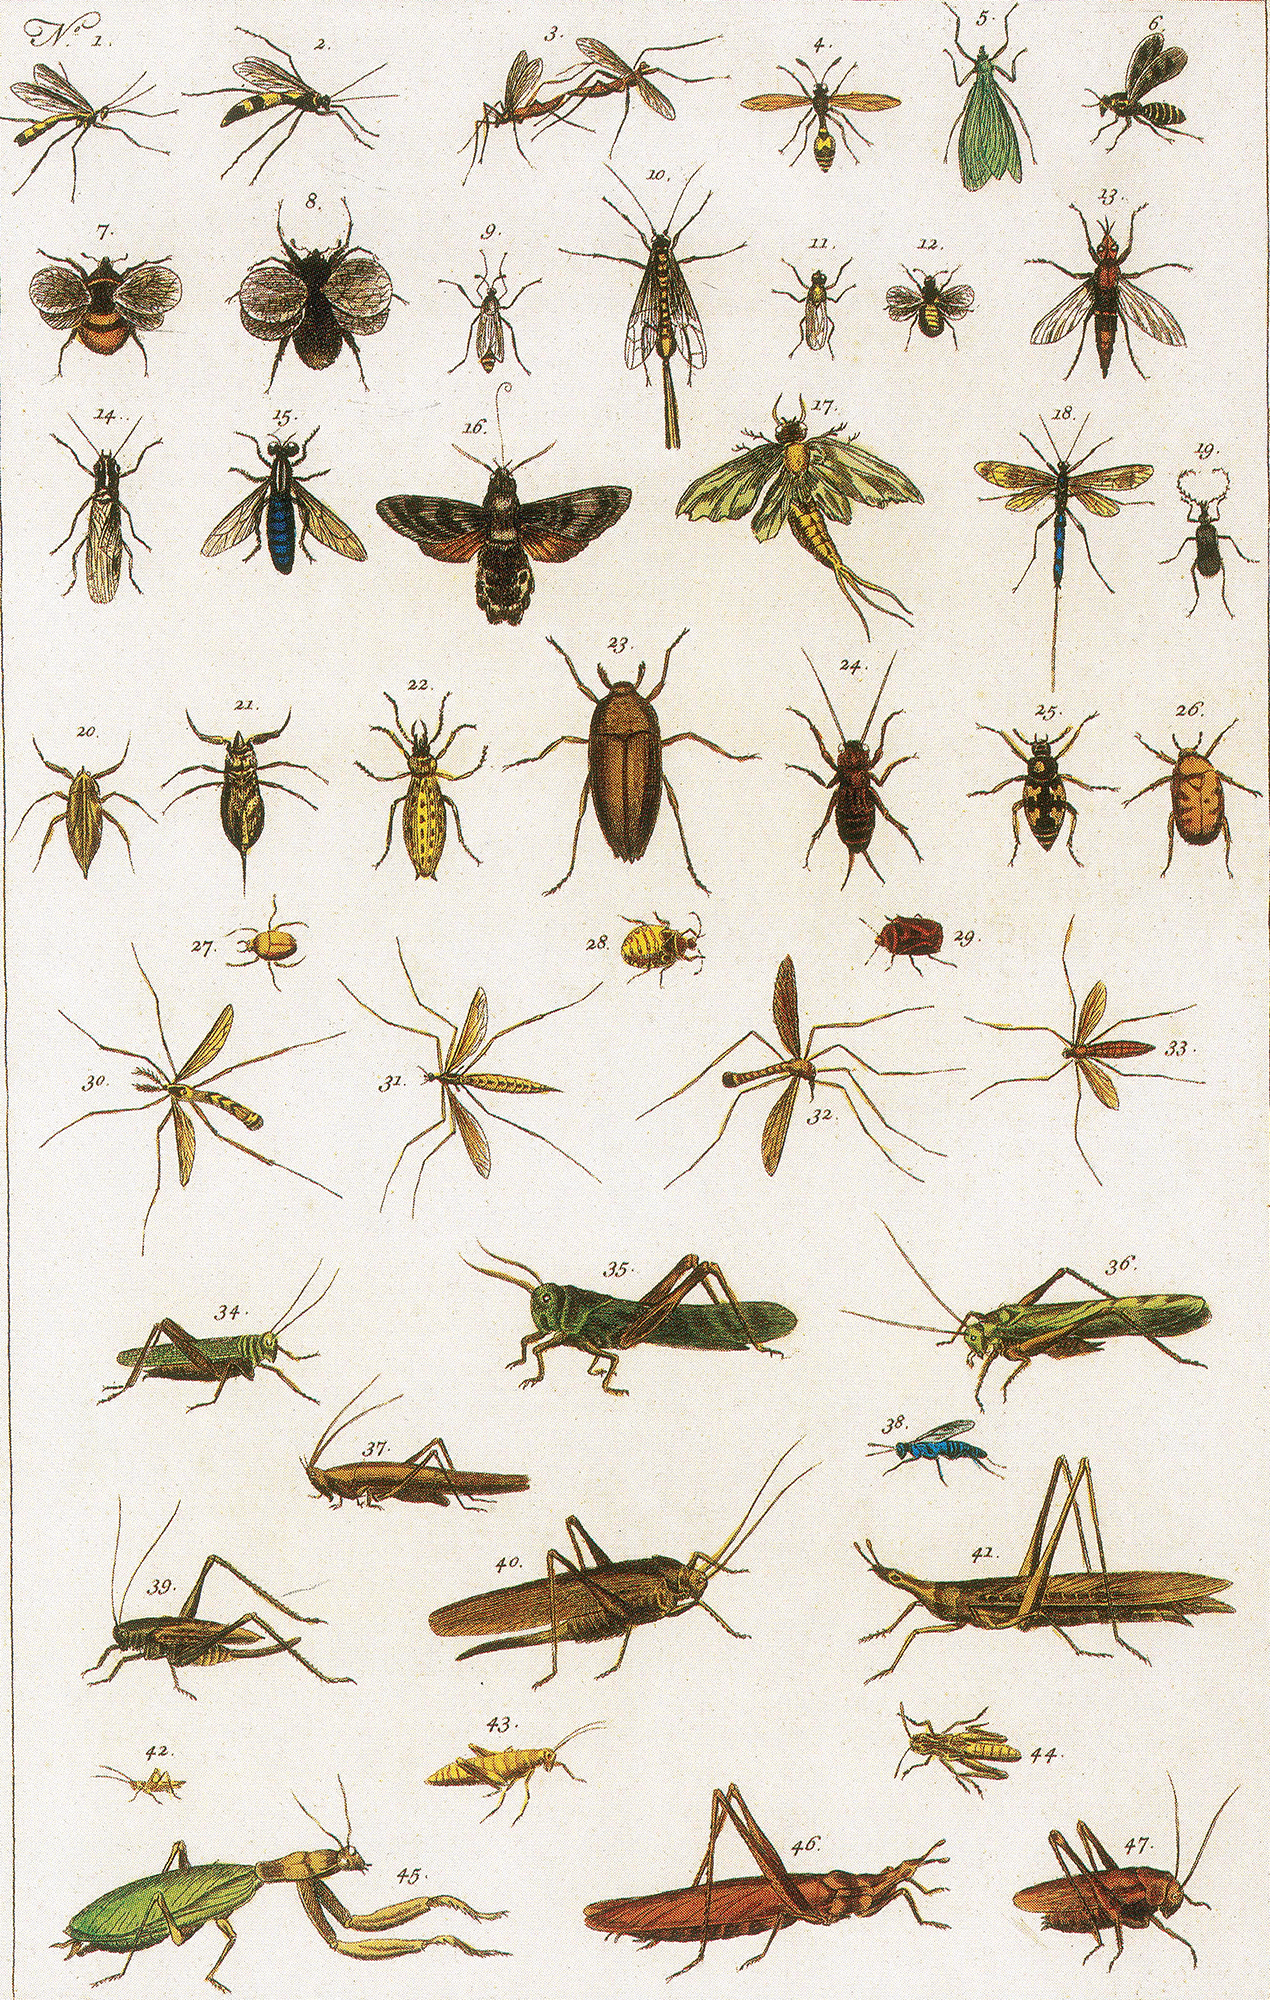 Illustration: Insects, 1734